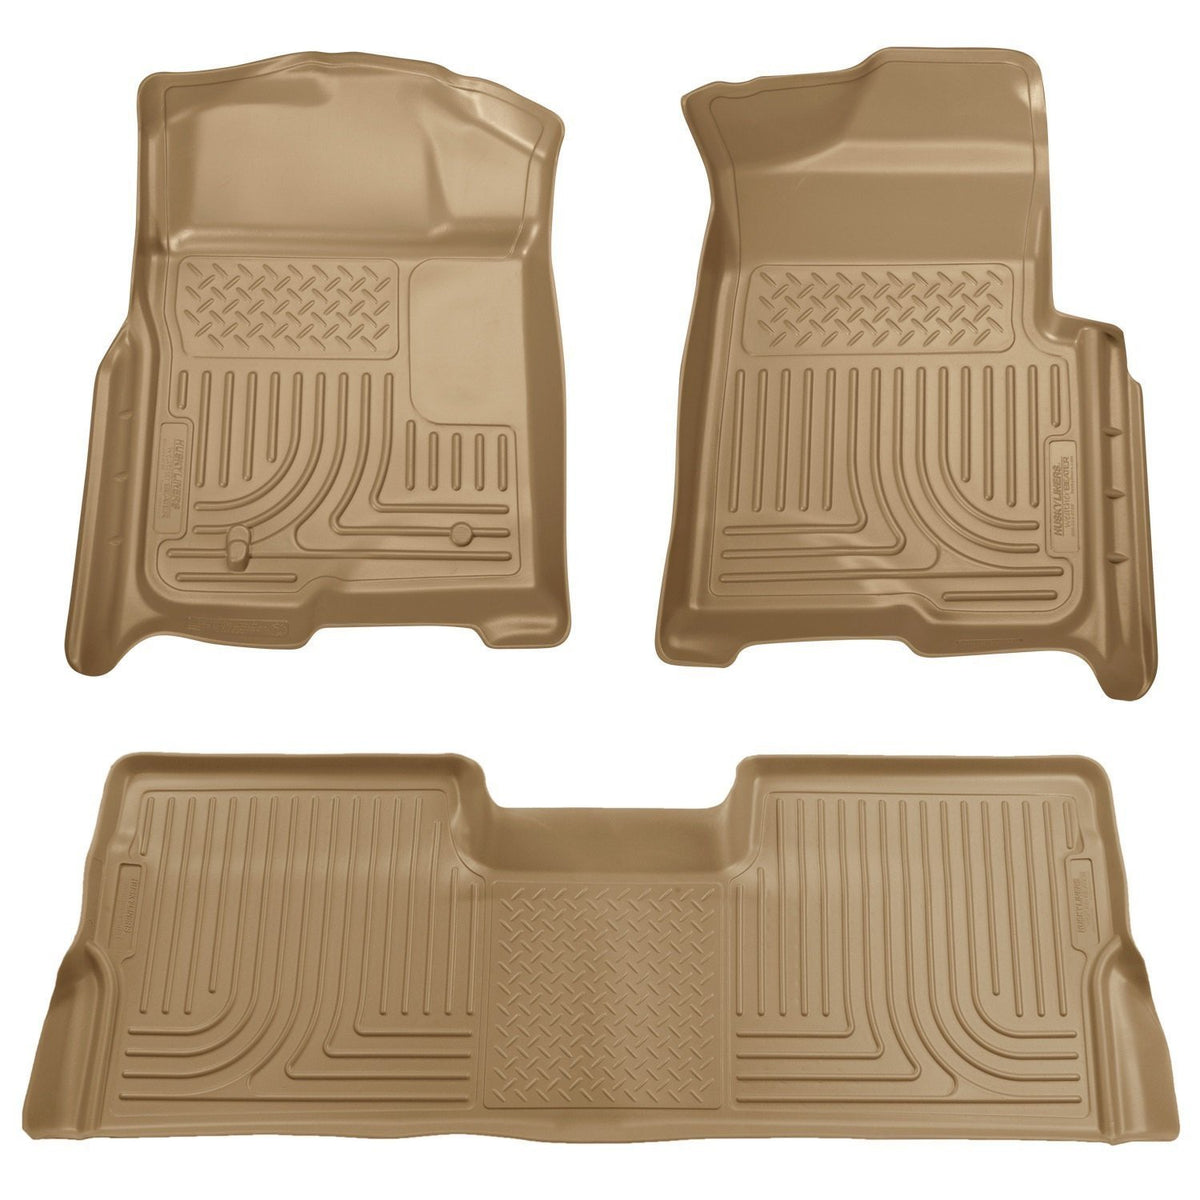 2008-2010 Ford SD Crew Cab WeatherBeater Combo Tan Floor Liners (w/o Manual Trans Case) by Husky Liners (98383) - Modern Automotive Performance